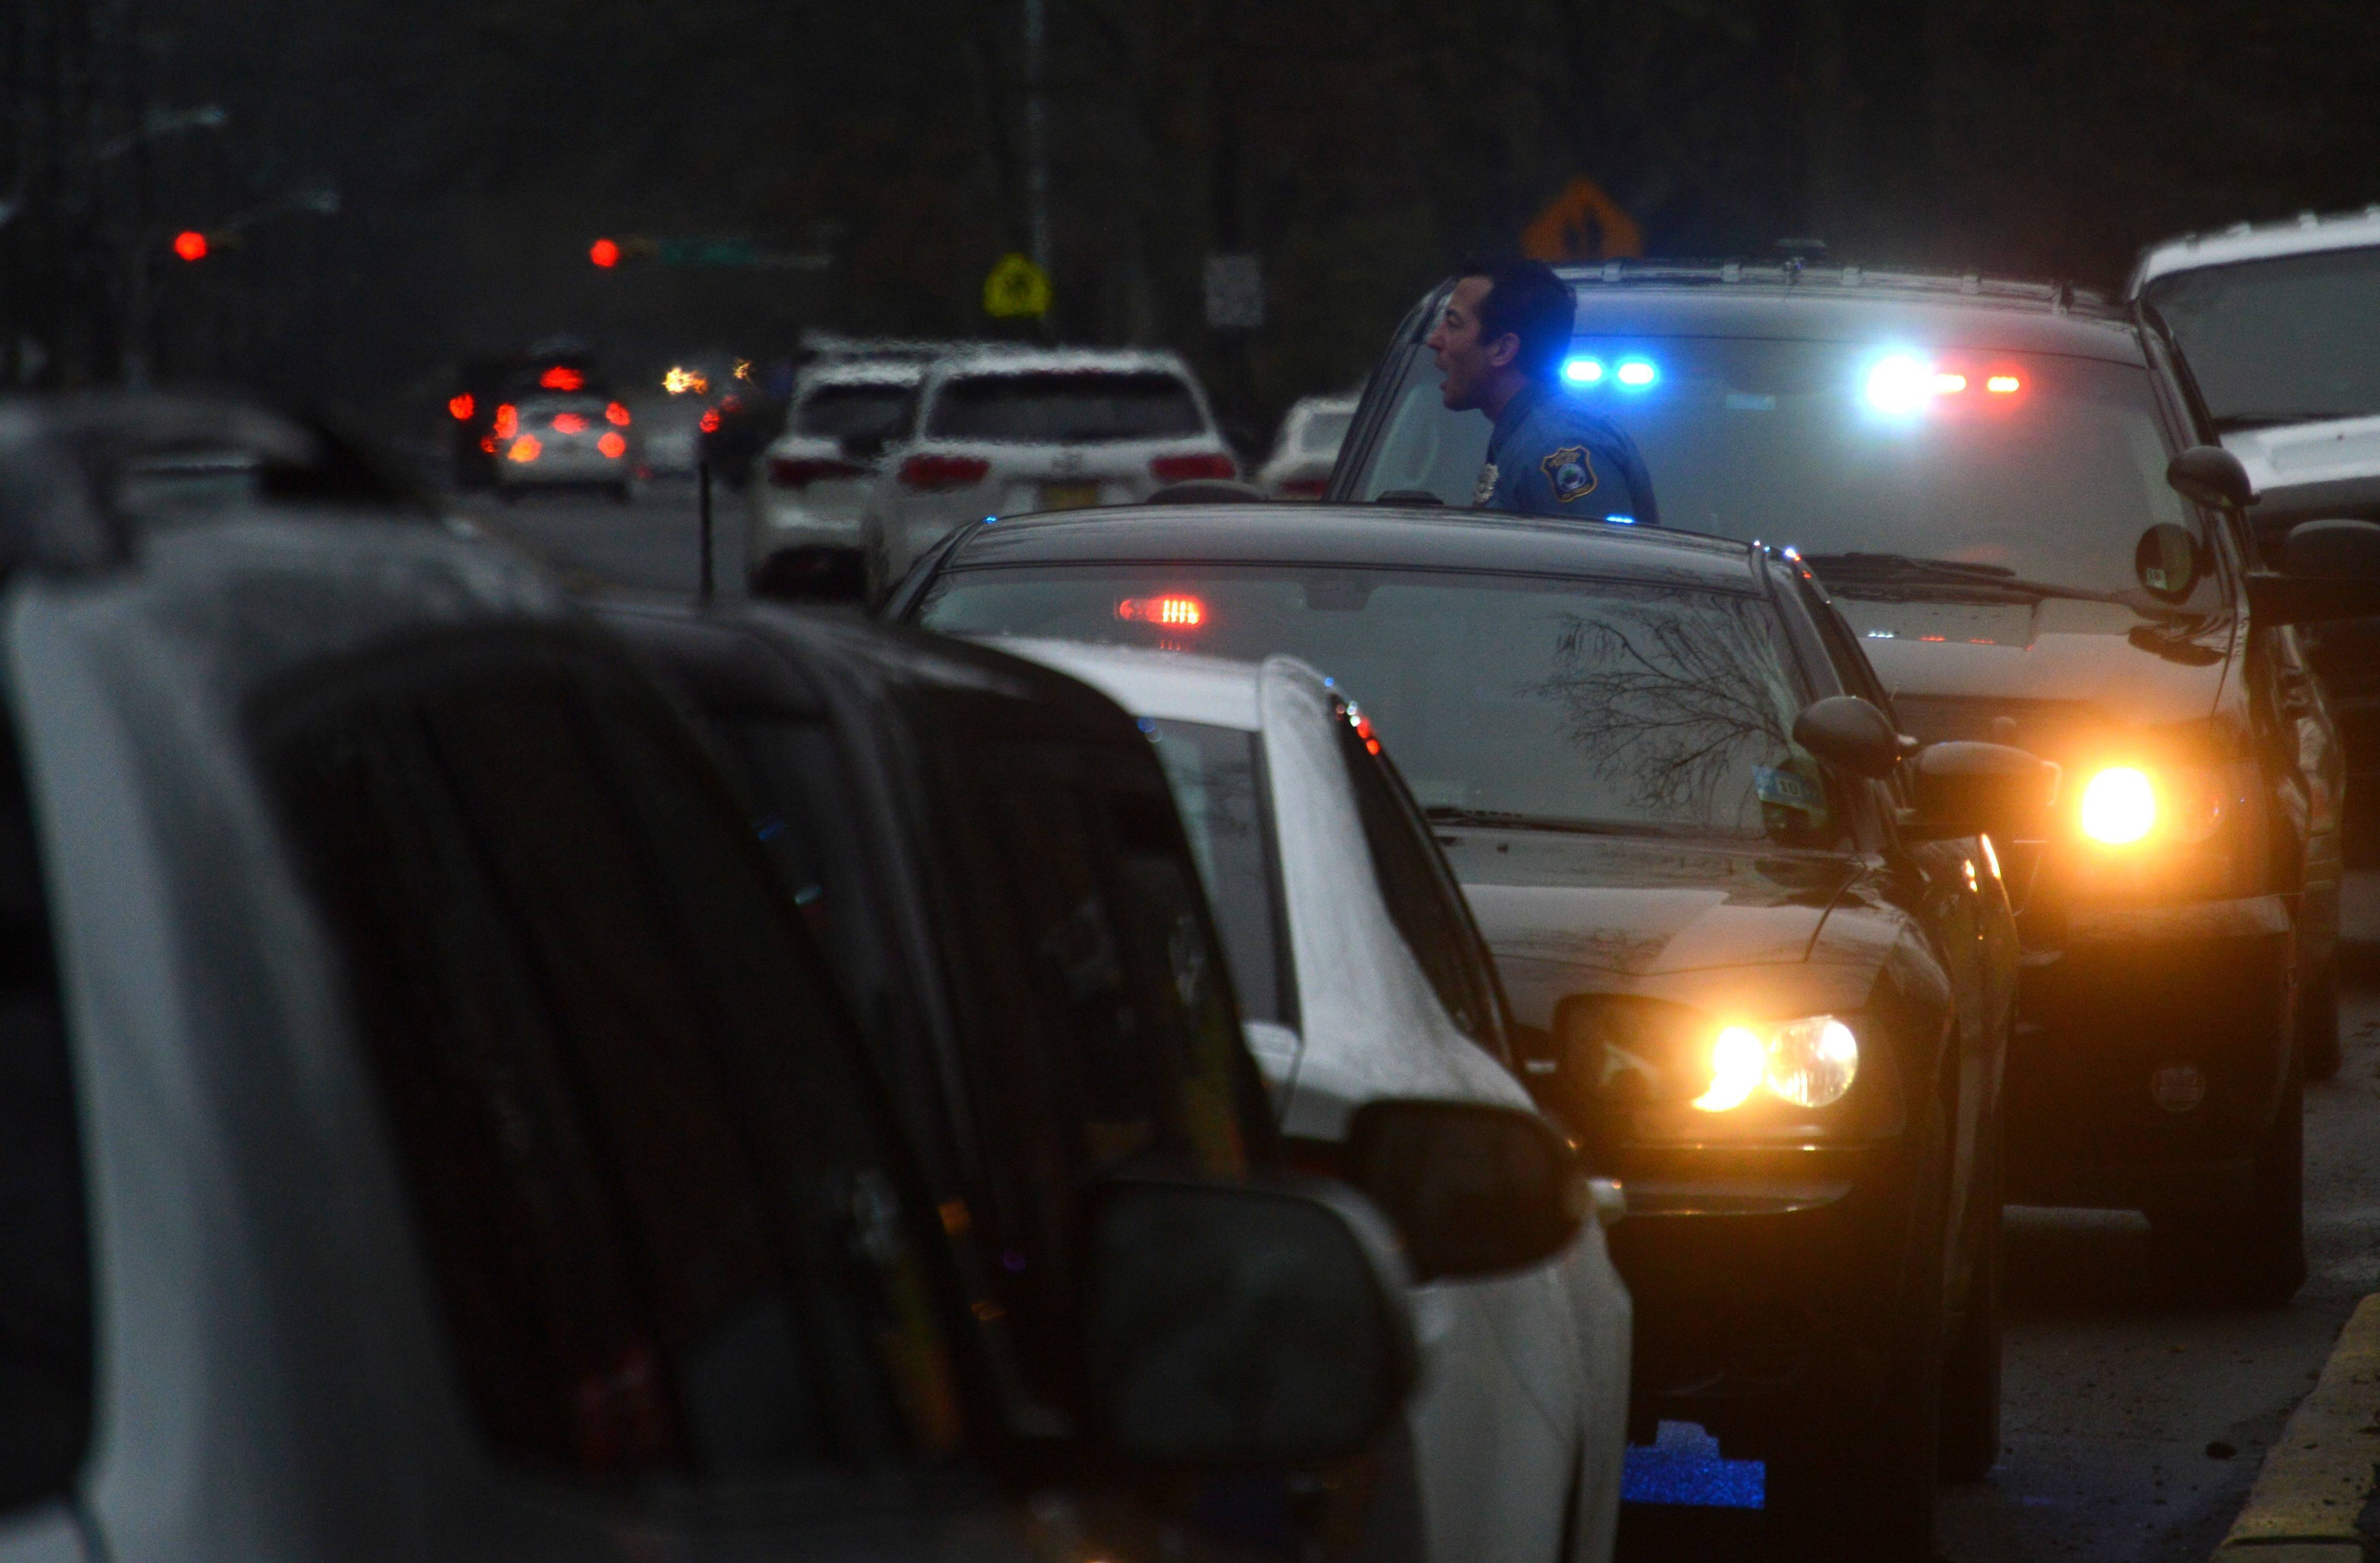 d73bfe356b7fc55ac2d3_bd67073459ac717842b1_Police_officer_answers_questions_from_people_attempting_to_enter_JCC_parking_lot..JPG